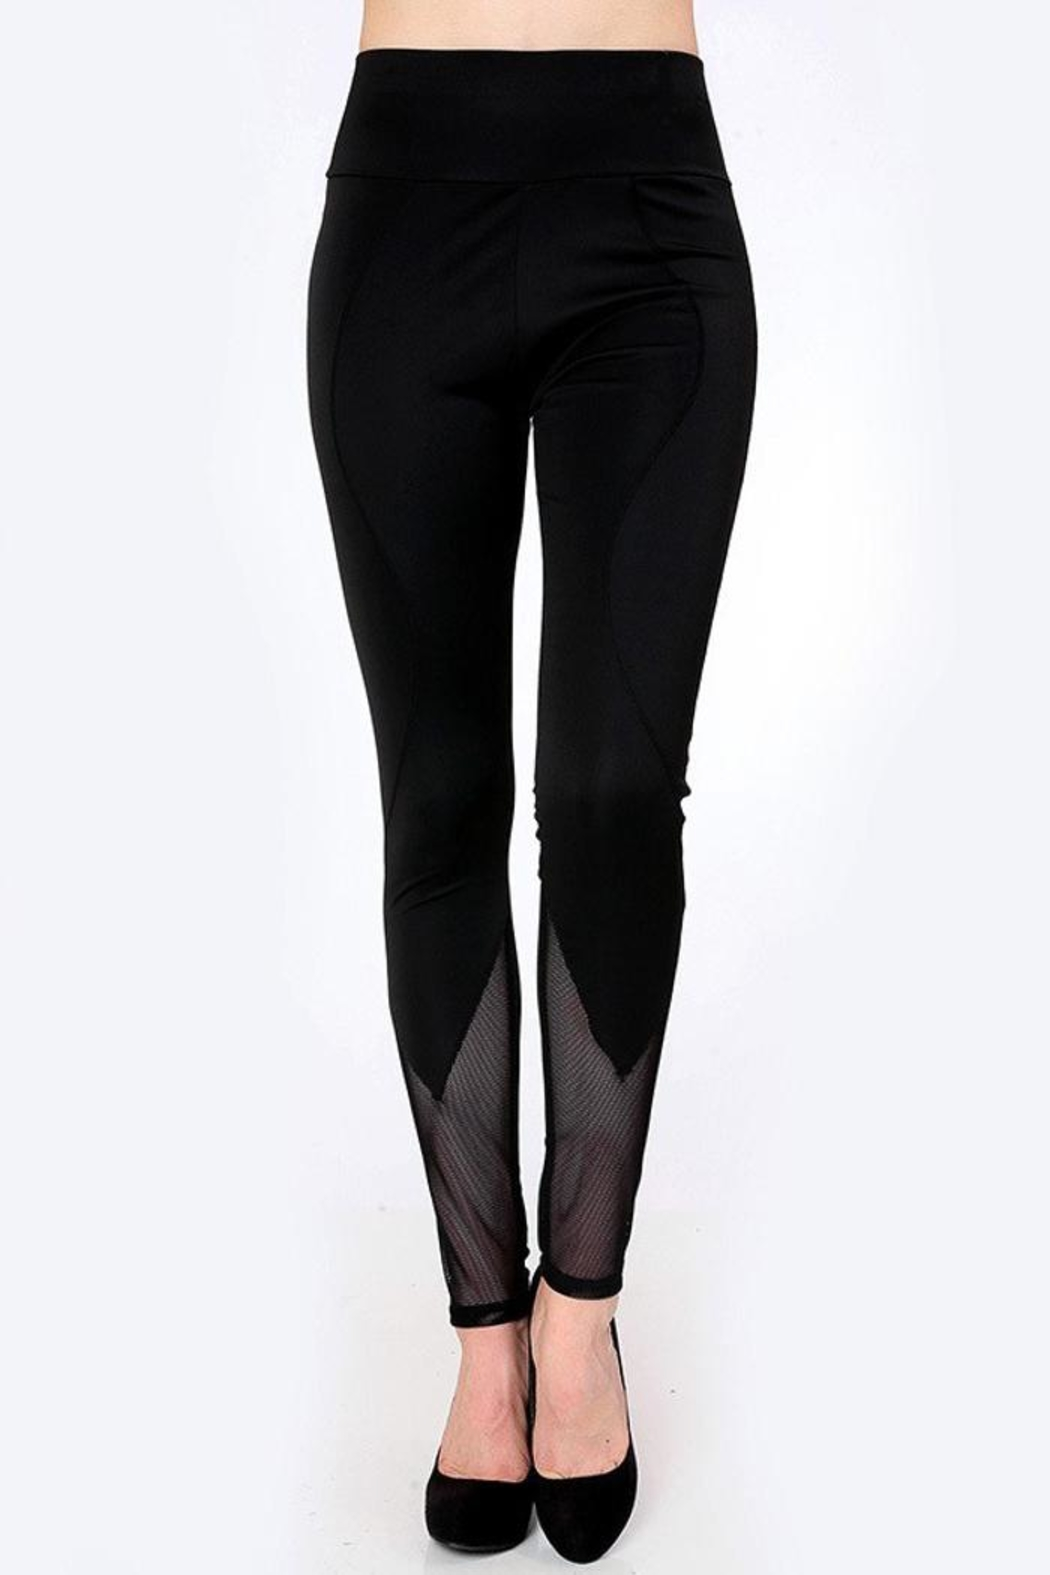 People Outfitter 80's Mesh Leggings - Back Cropped Image